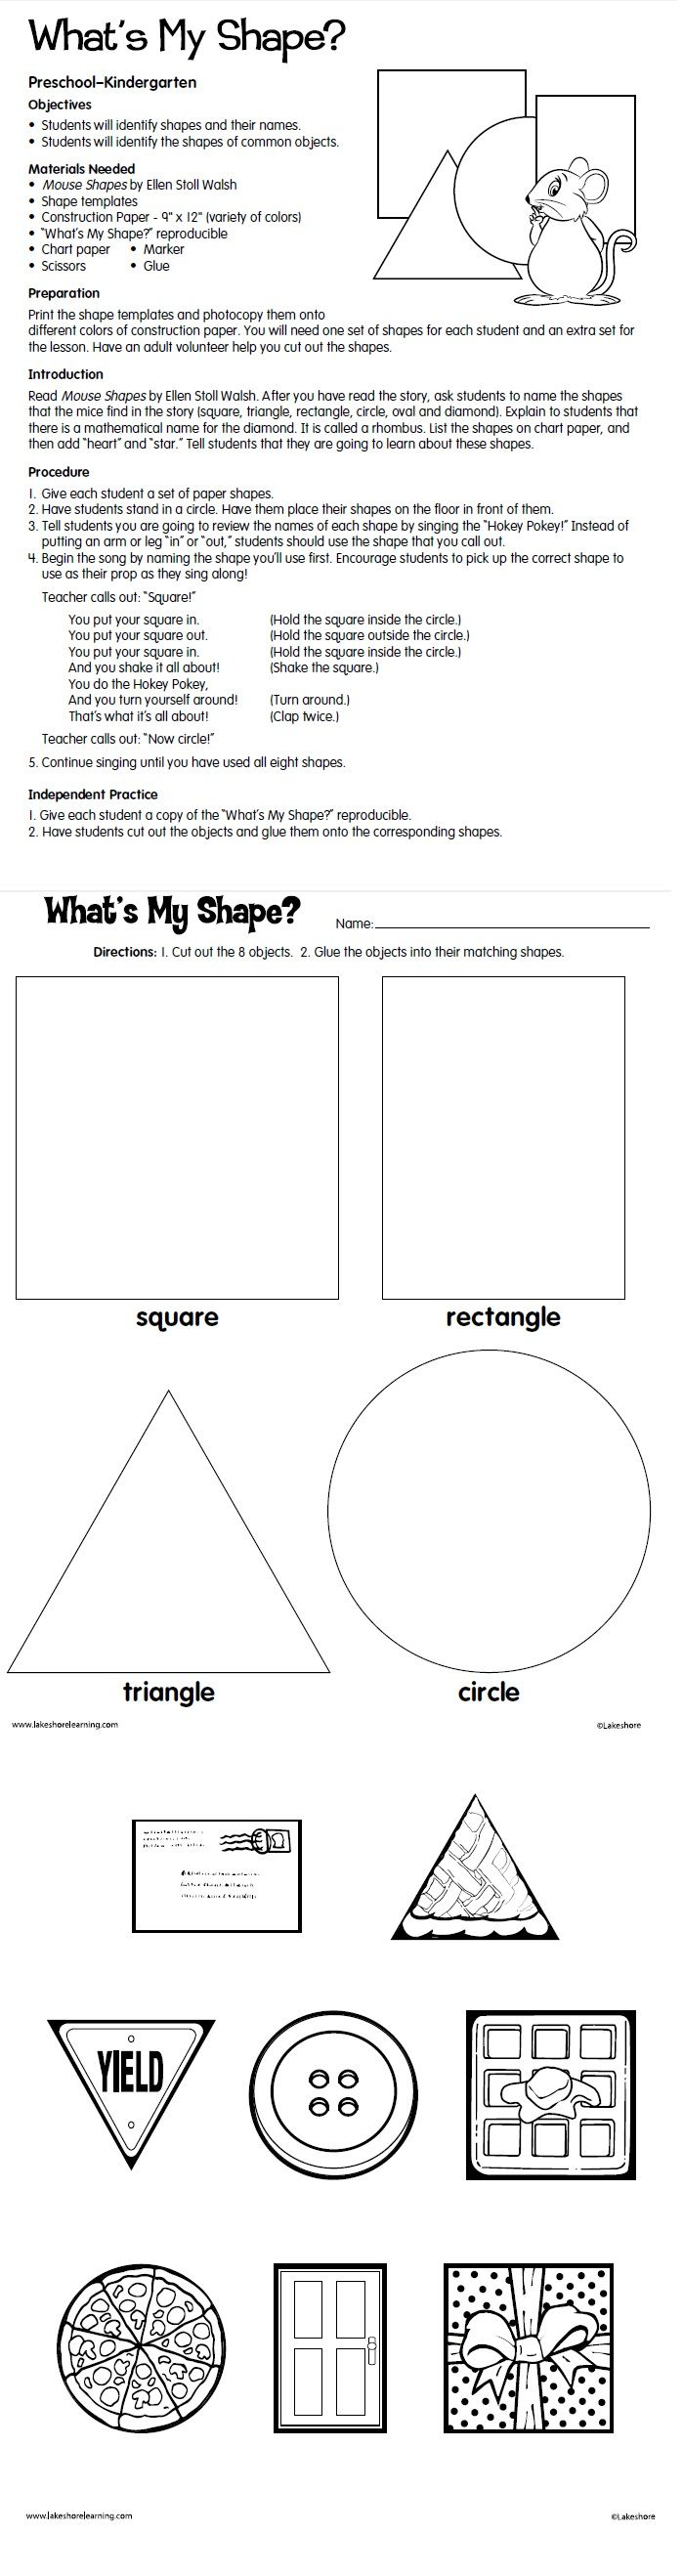 What S My Shape Lesson Plan From Lakeshore Learning Kindergarten Math Lesson Plans Kindergarten Geometry Lessons Shapes Lessons